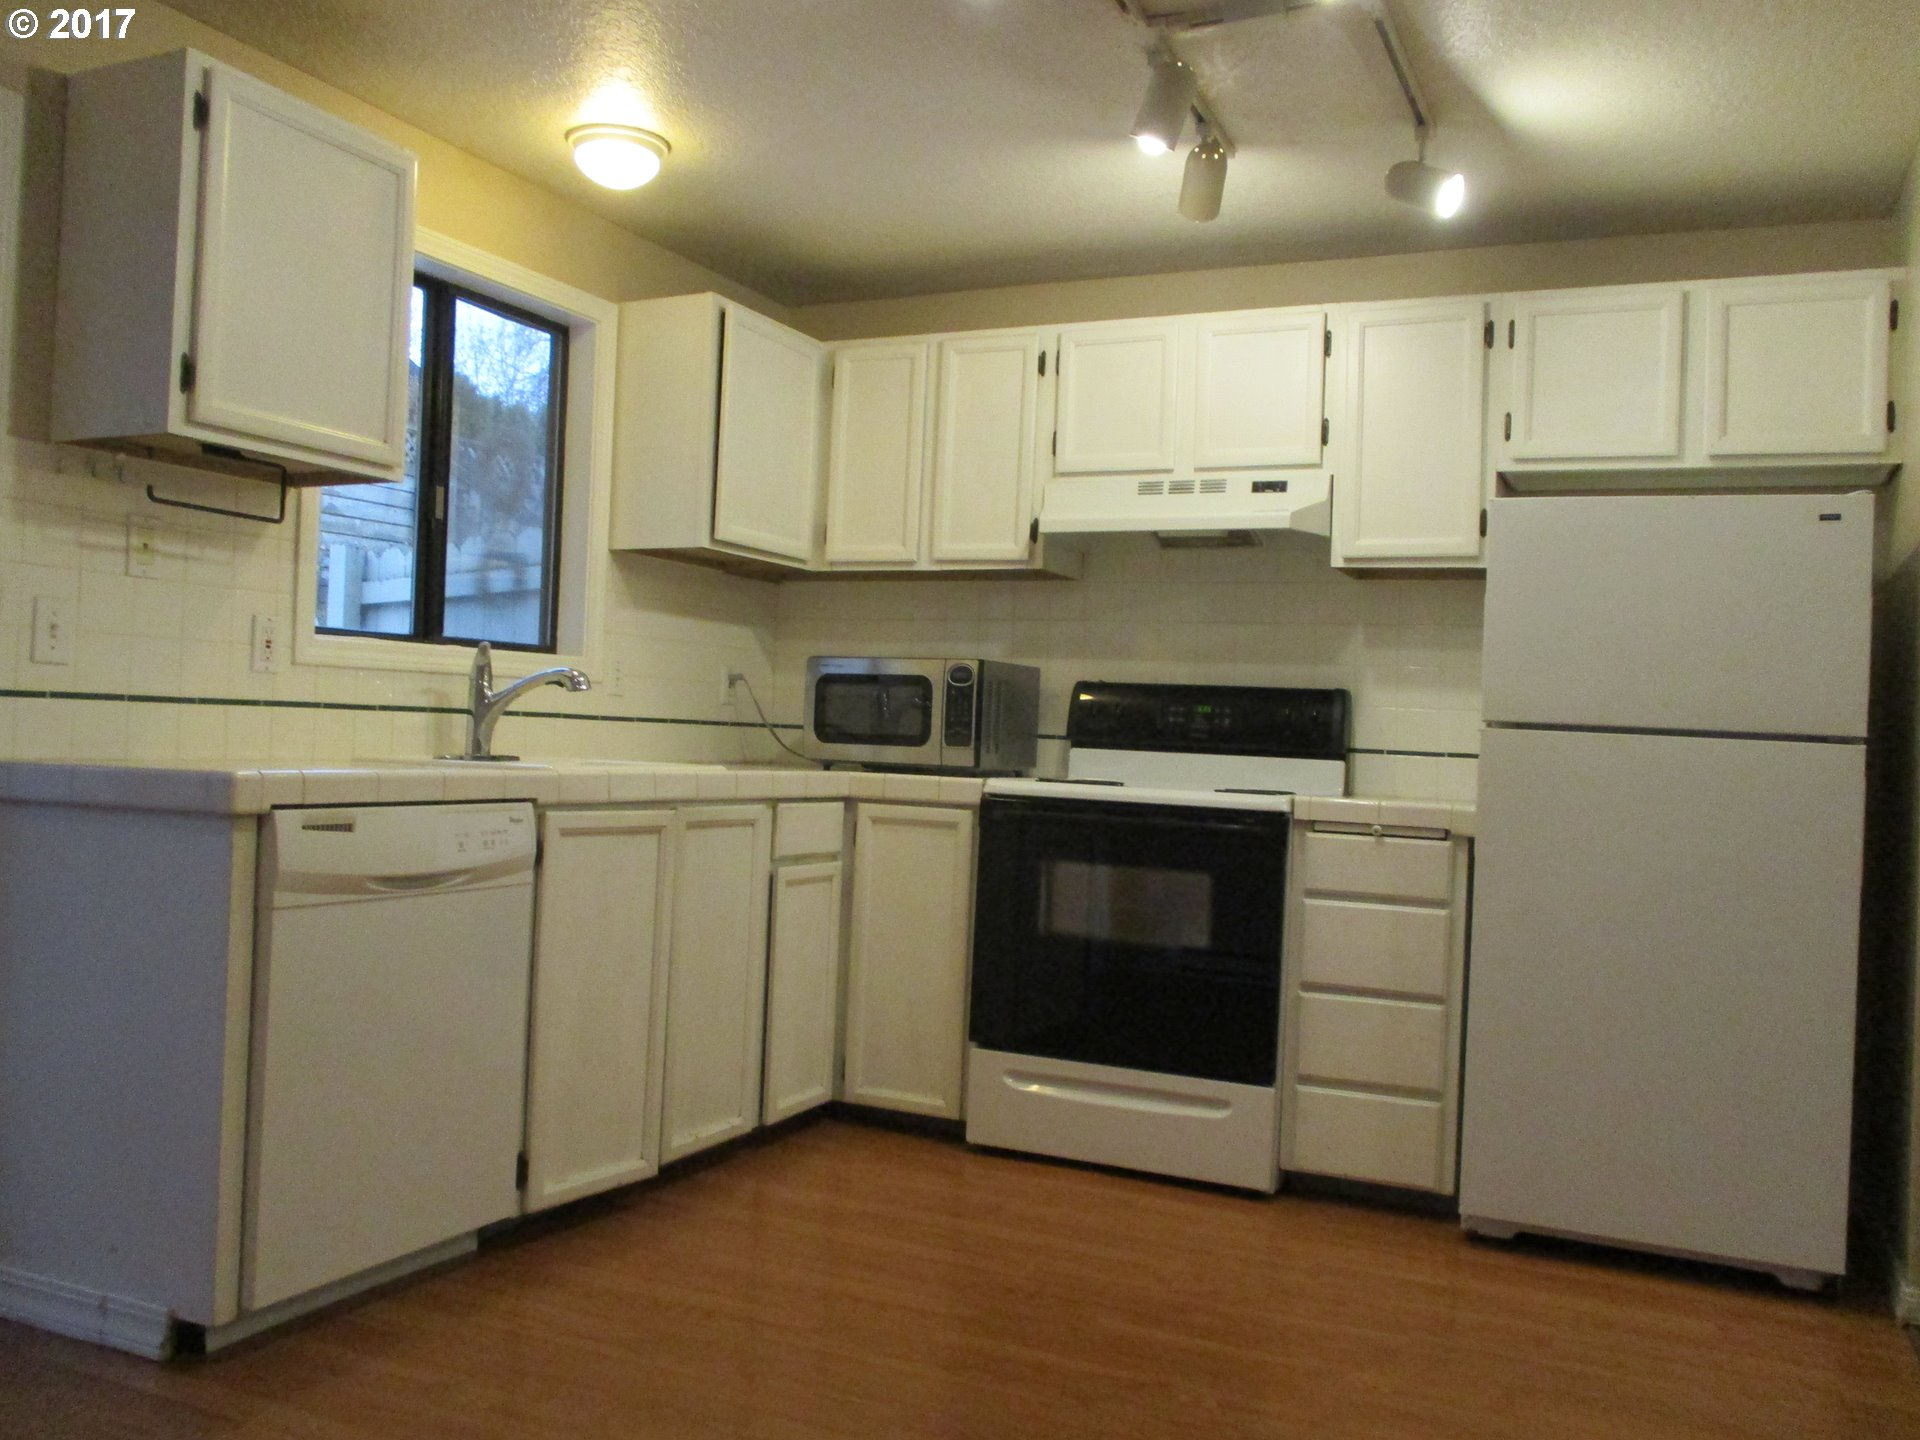 930 sq. ft 2 bedrooms 1 bathrooms  House For Sale,Wilsonville, OR